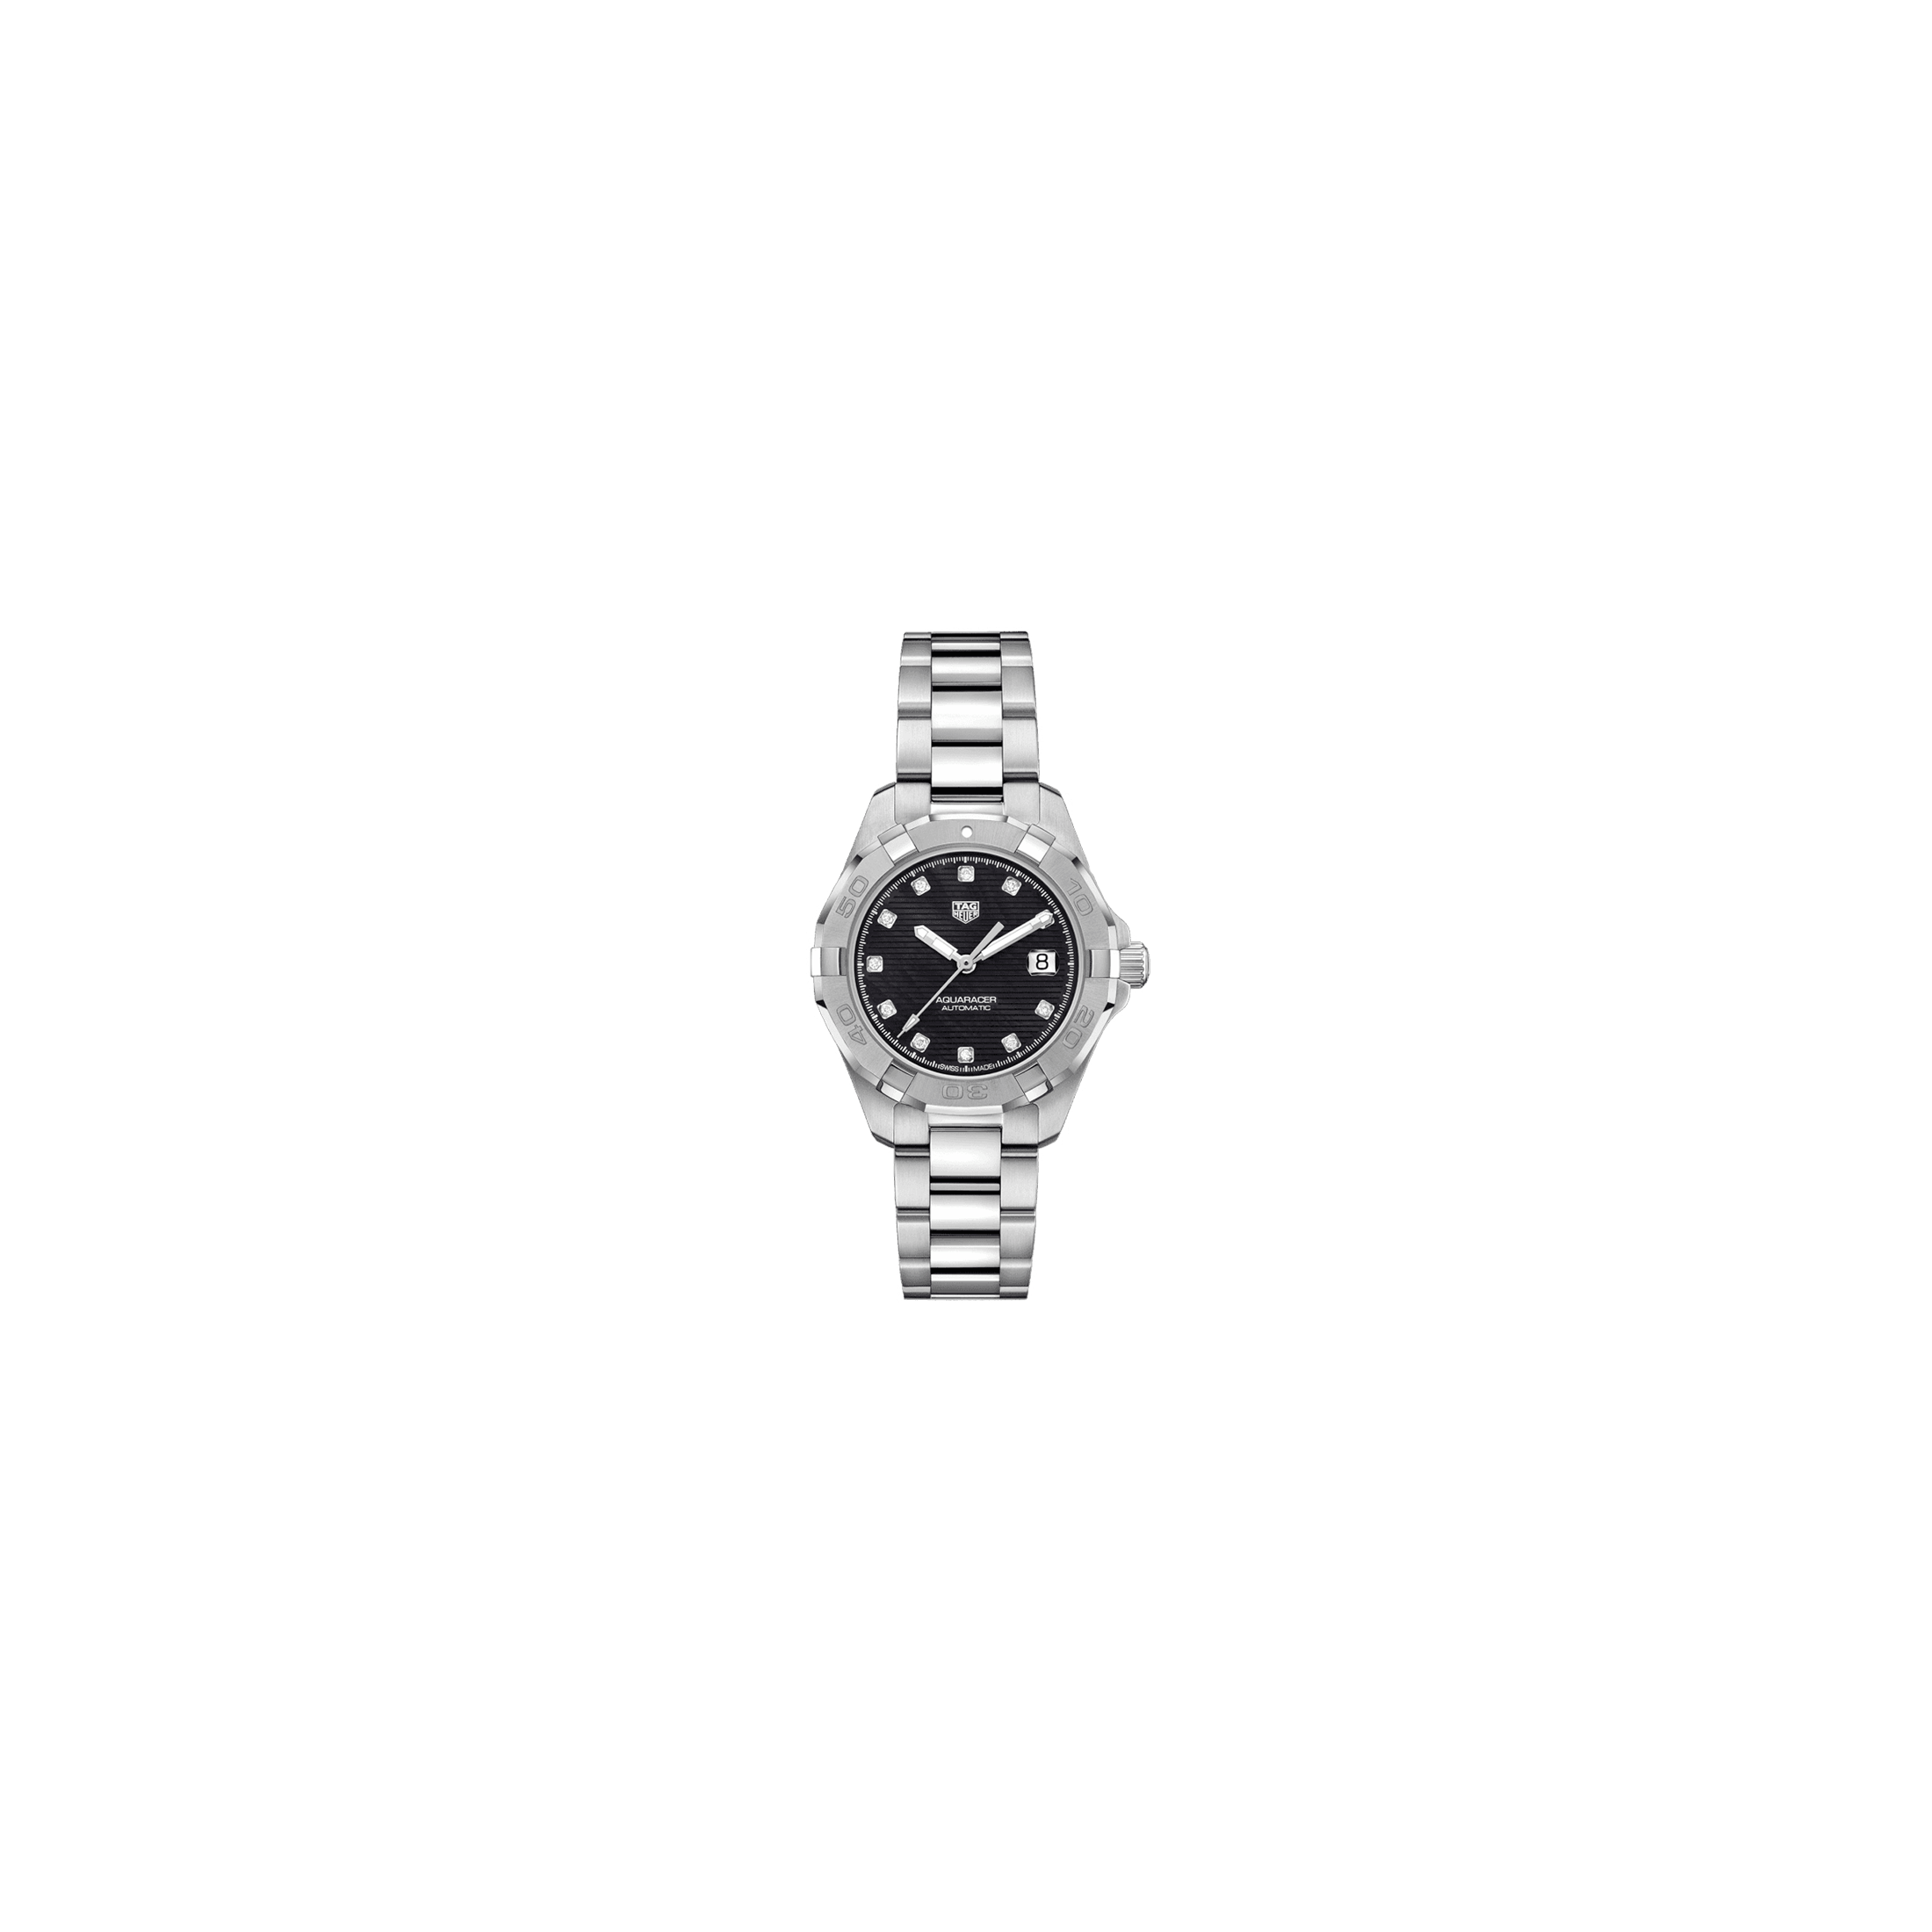 Montre TAG Heuer Aquaracer Calibre 9 cadran noir index diamants bracelet acier 32 mm - SOLDAT PL